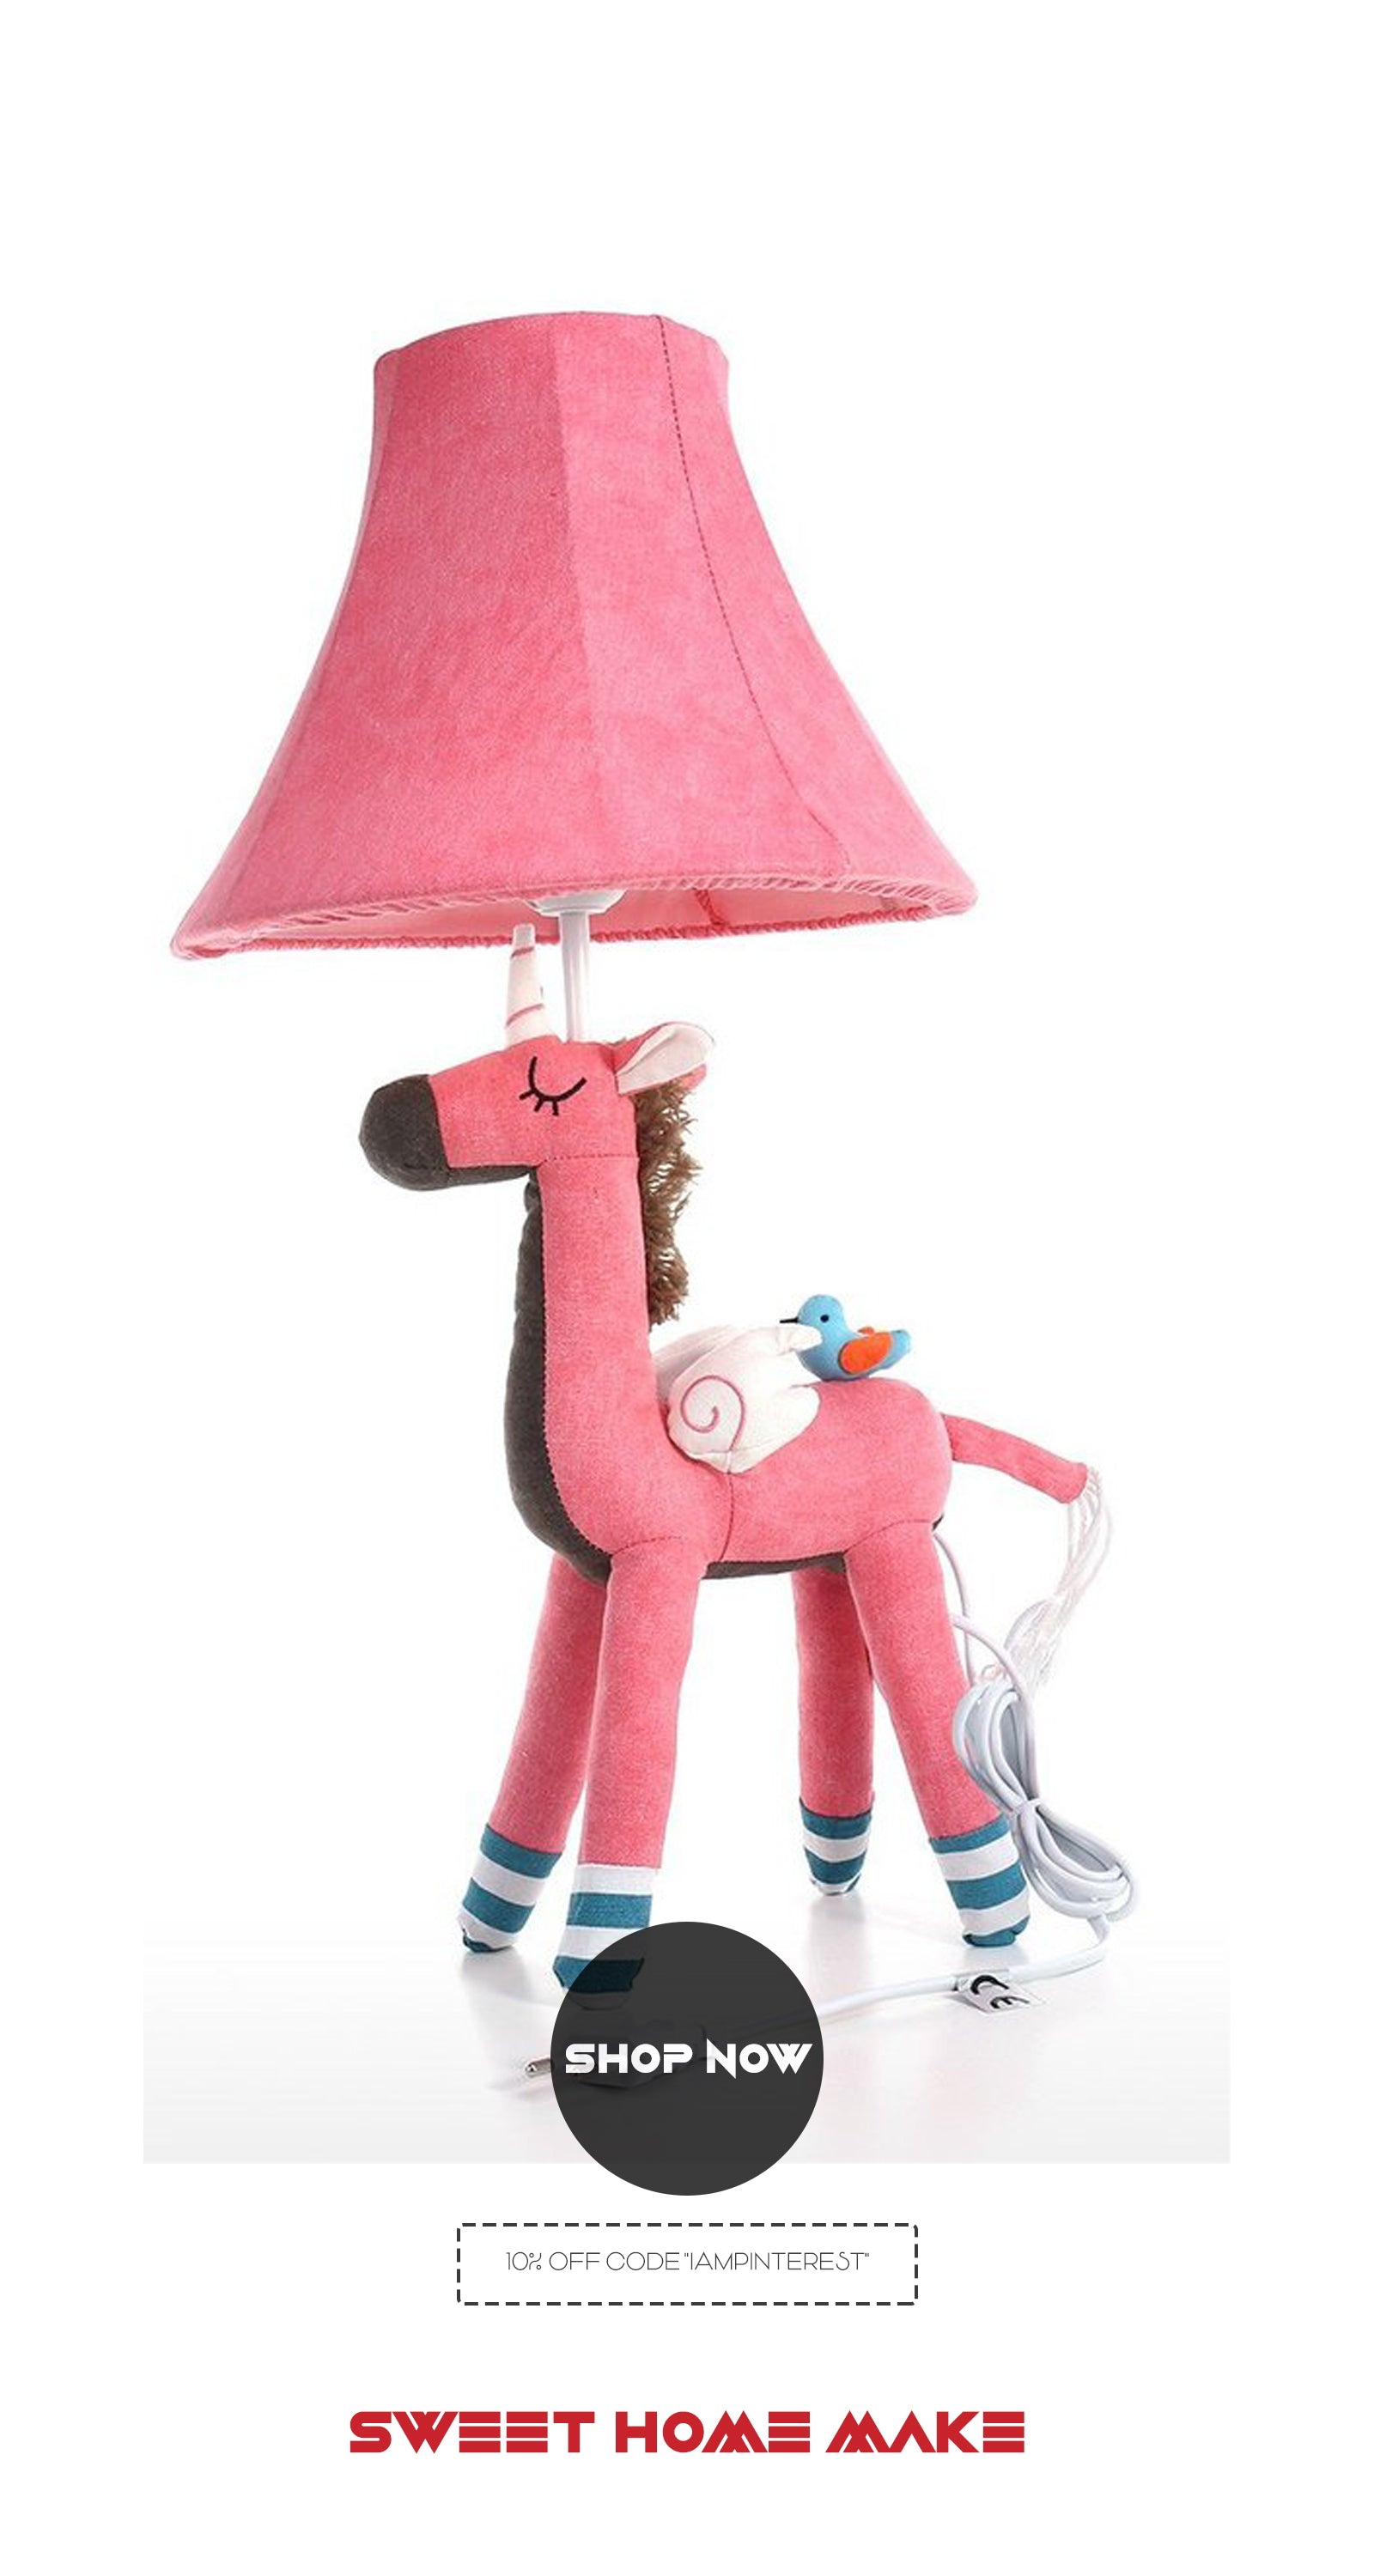 Small Table Lamp and Girls Bedroom Lamp with Unicorn Toy